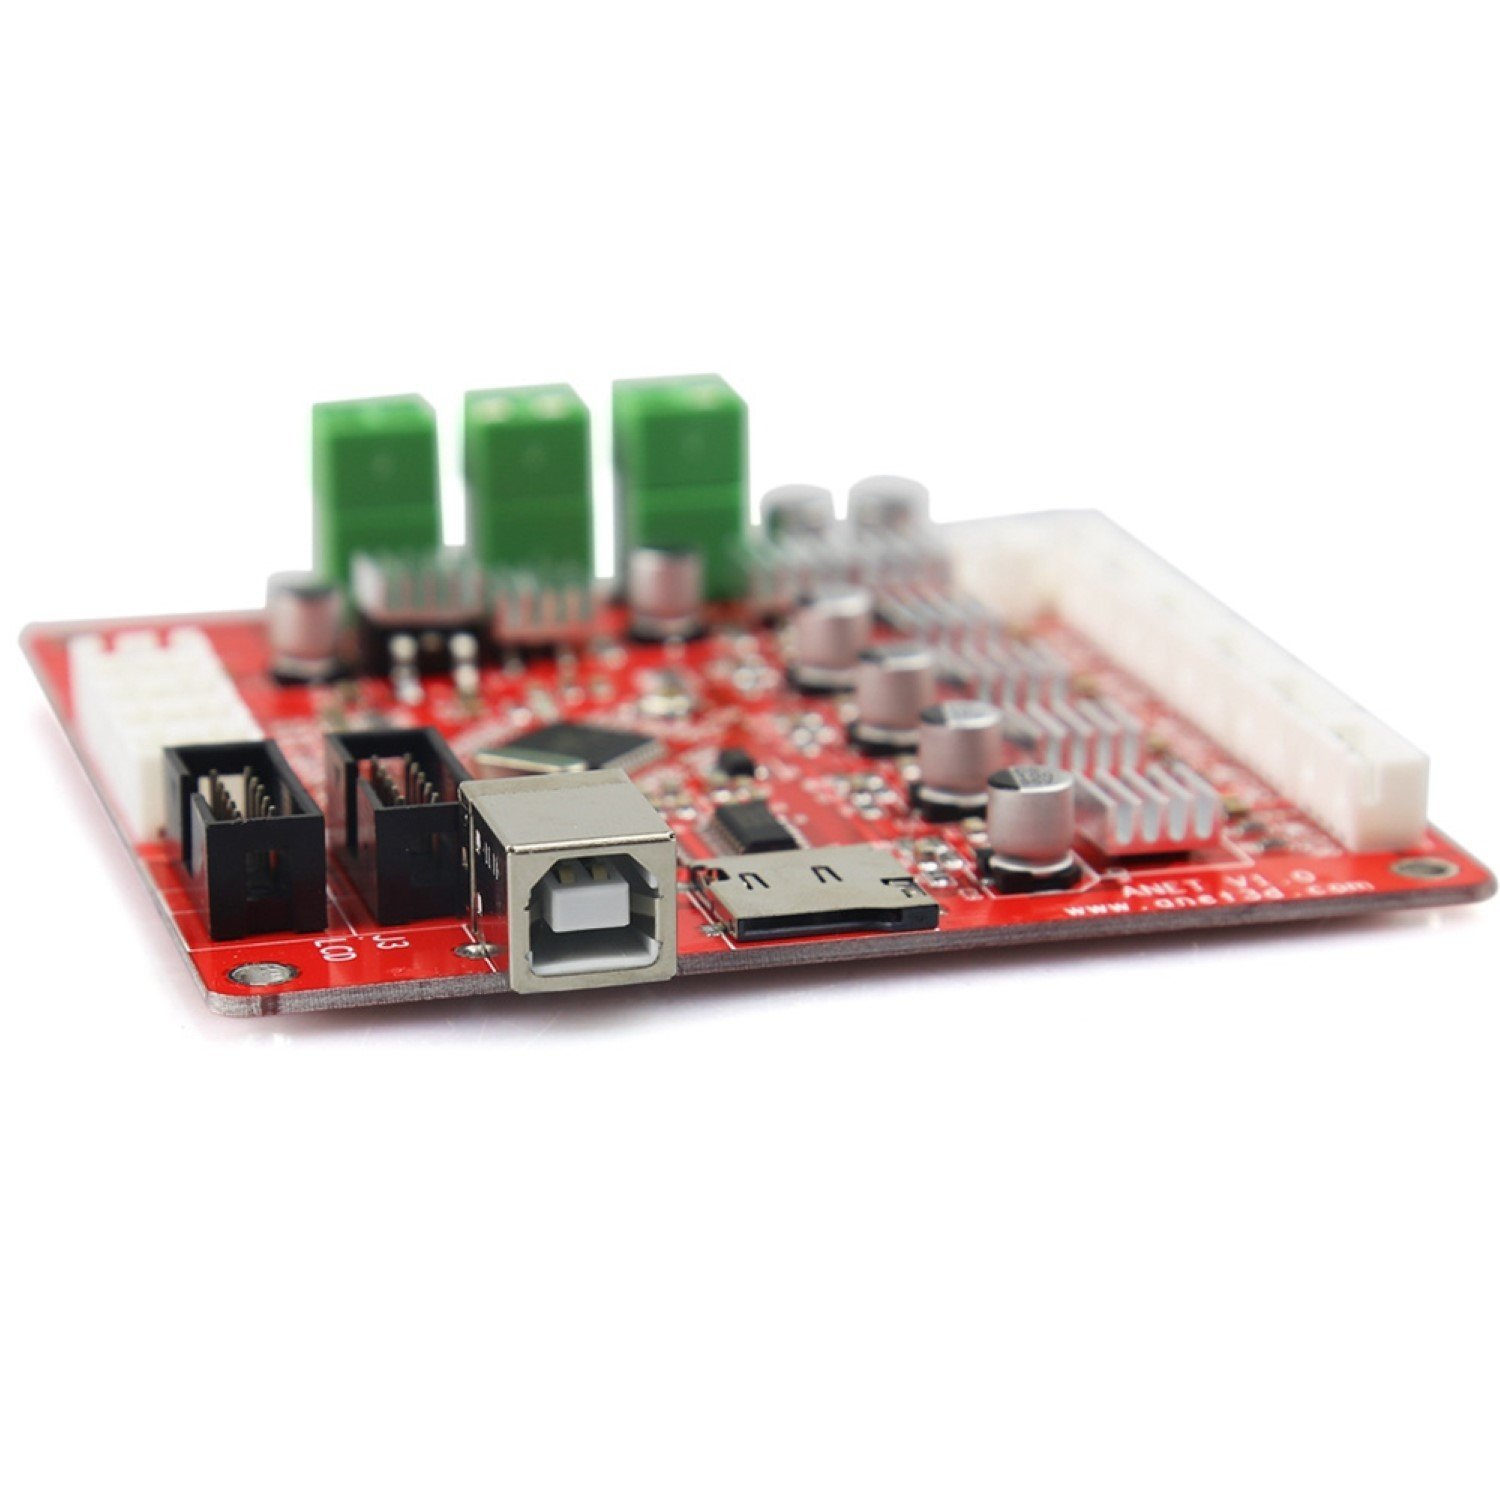 61b9mgdhqdL._SL1500_?fit=1500%2C1500 anet v1 0 board 3daddict  at fashall.co